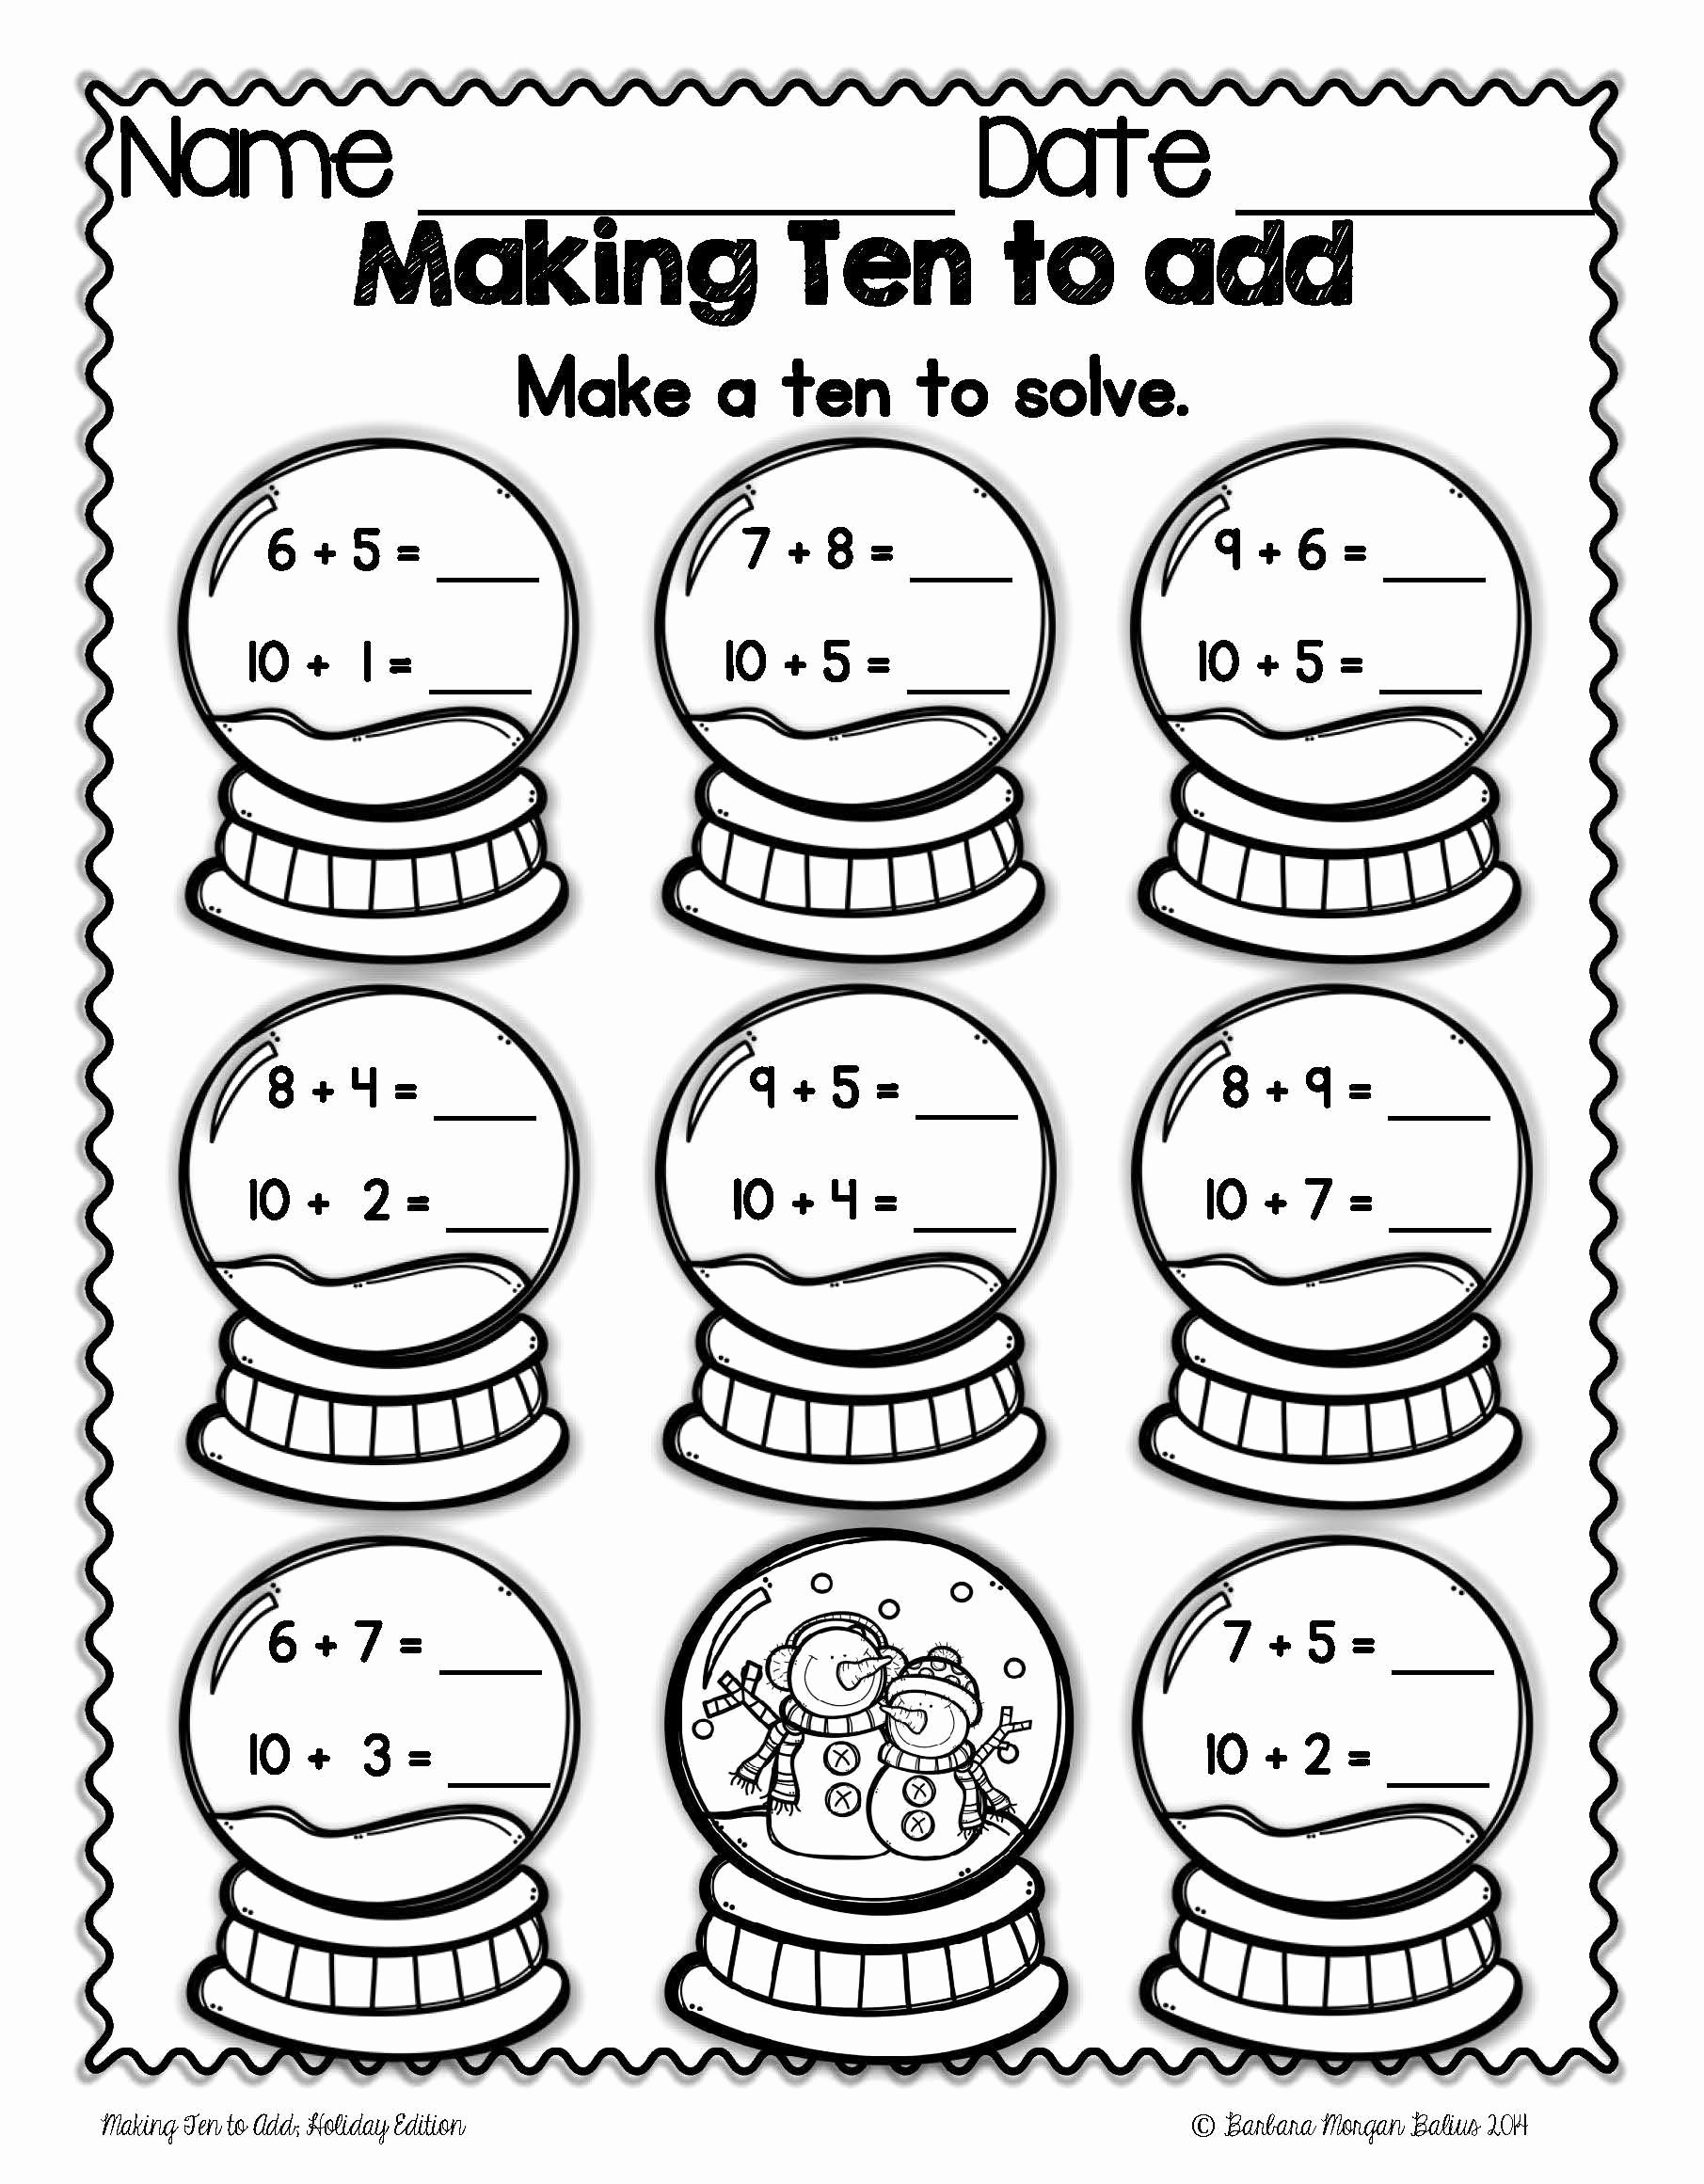 Printable Multiplication Worksheets Awesome Worksheets Halloween Multiplication Worksheets Tens